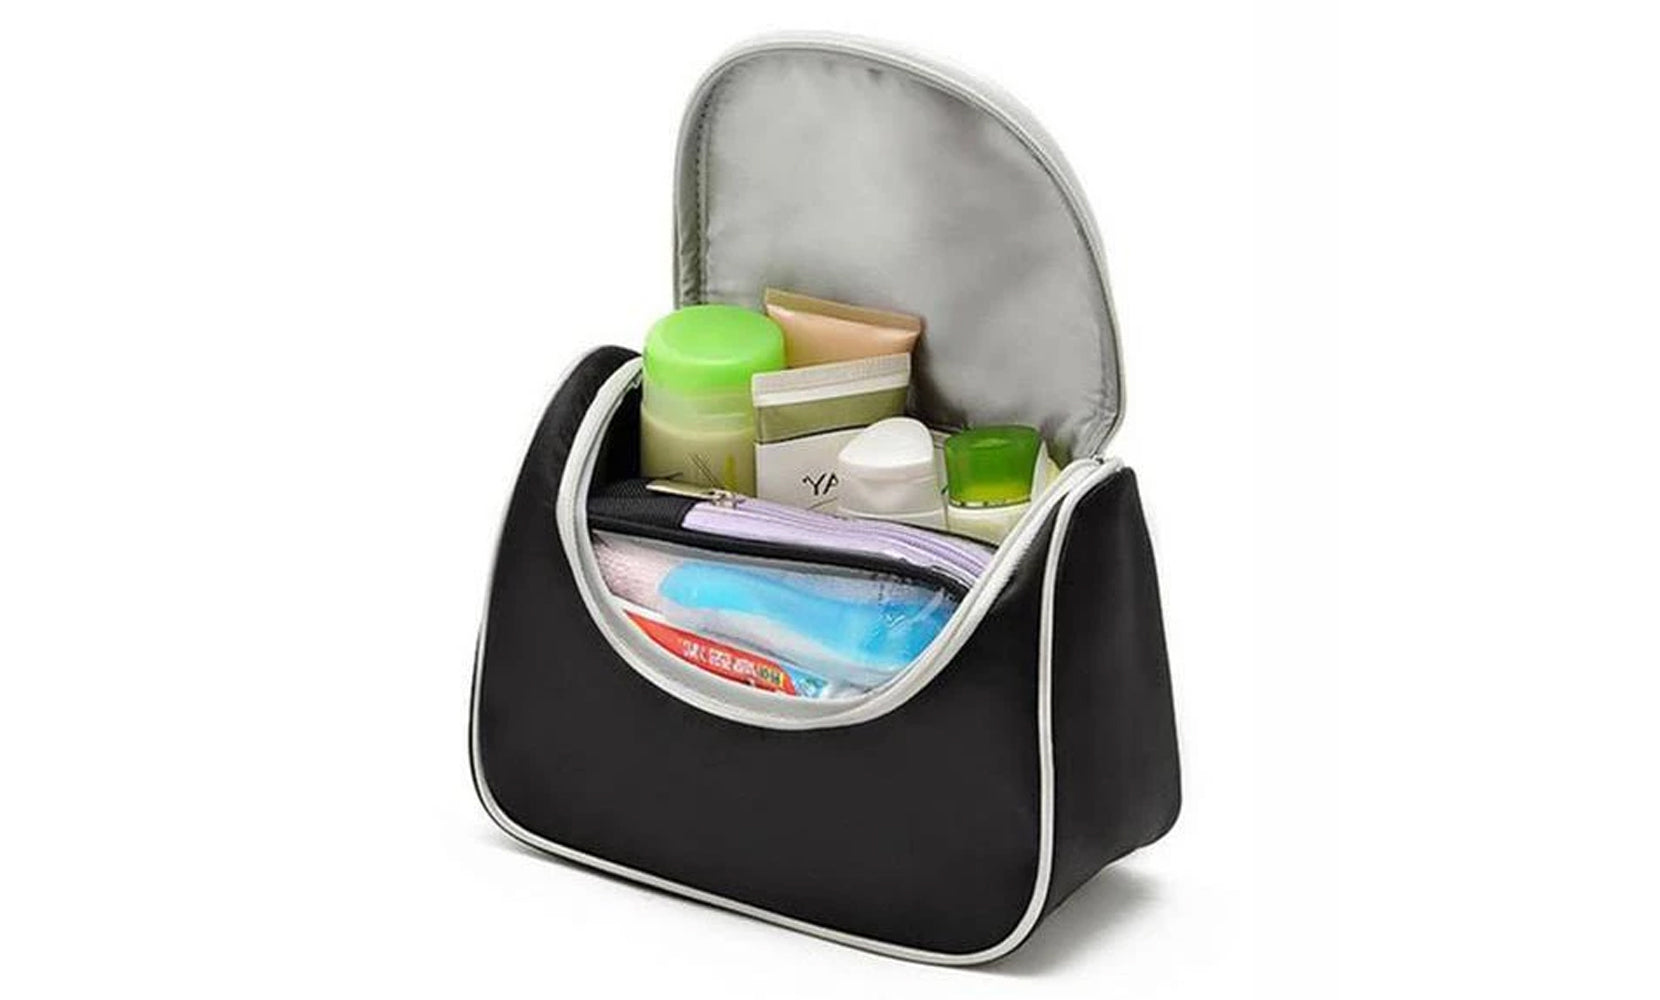 The Perfect Travel Companion Toiletry Bag